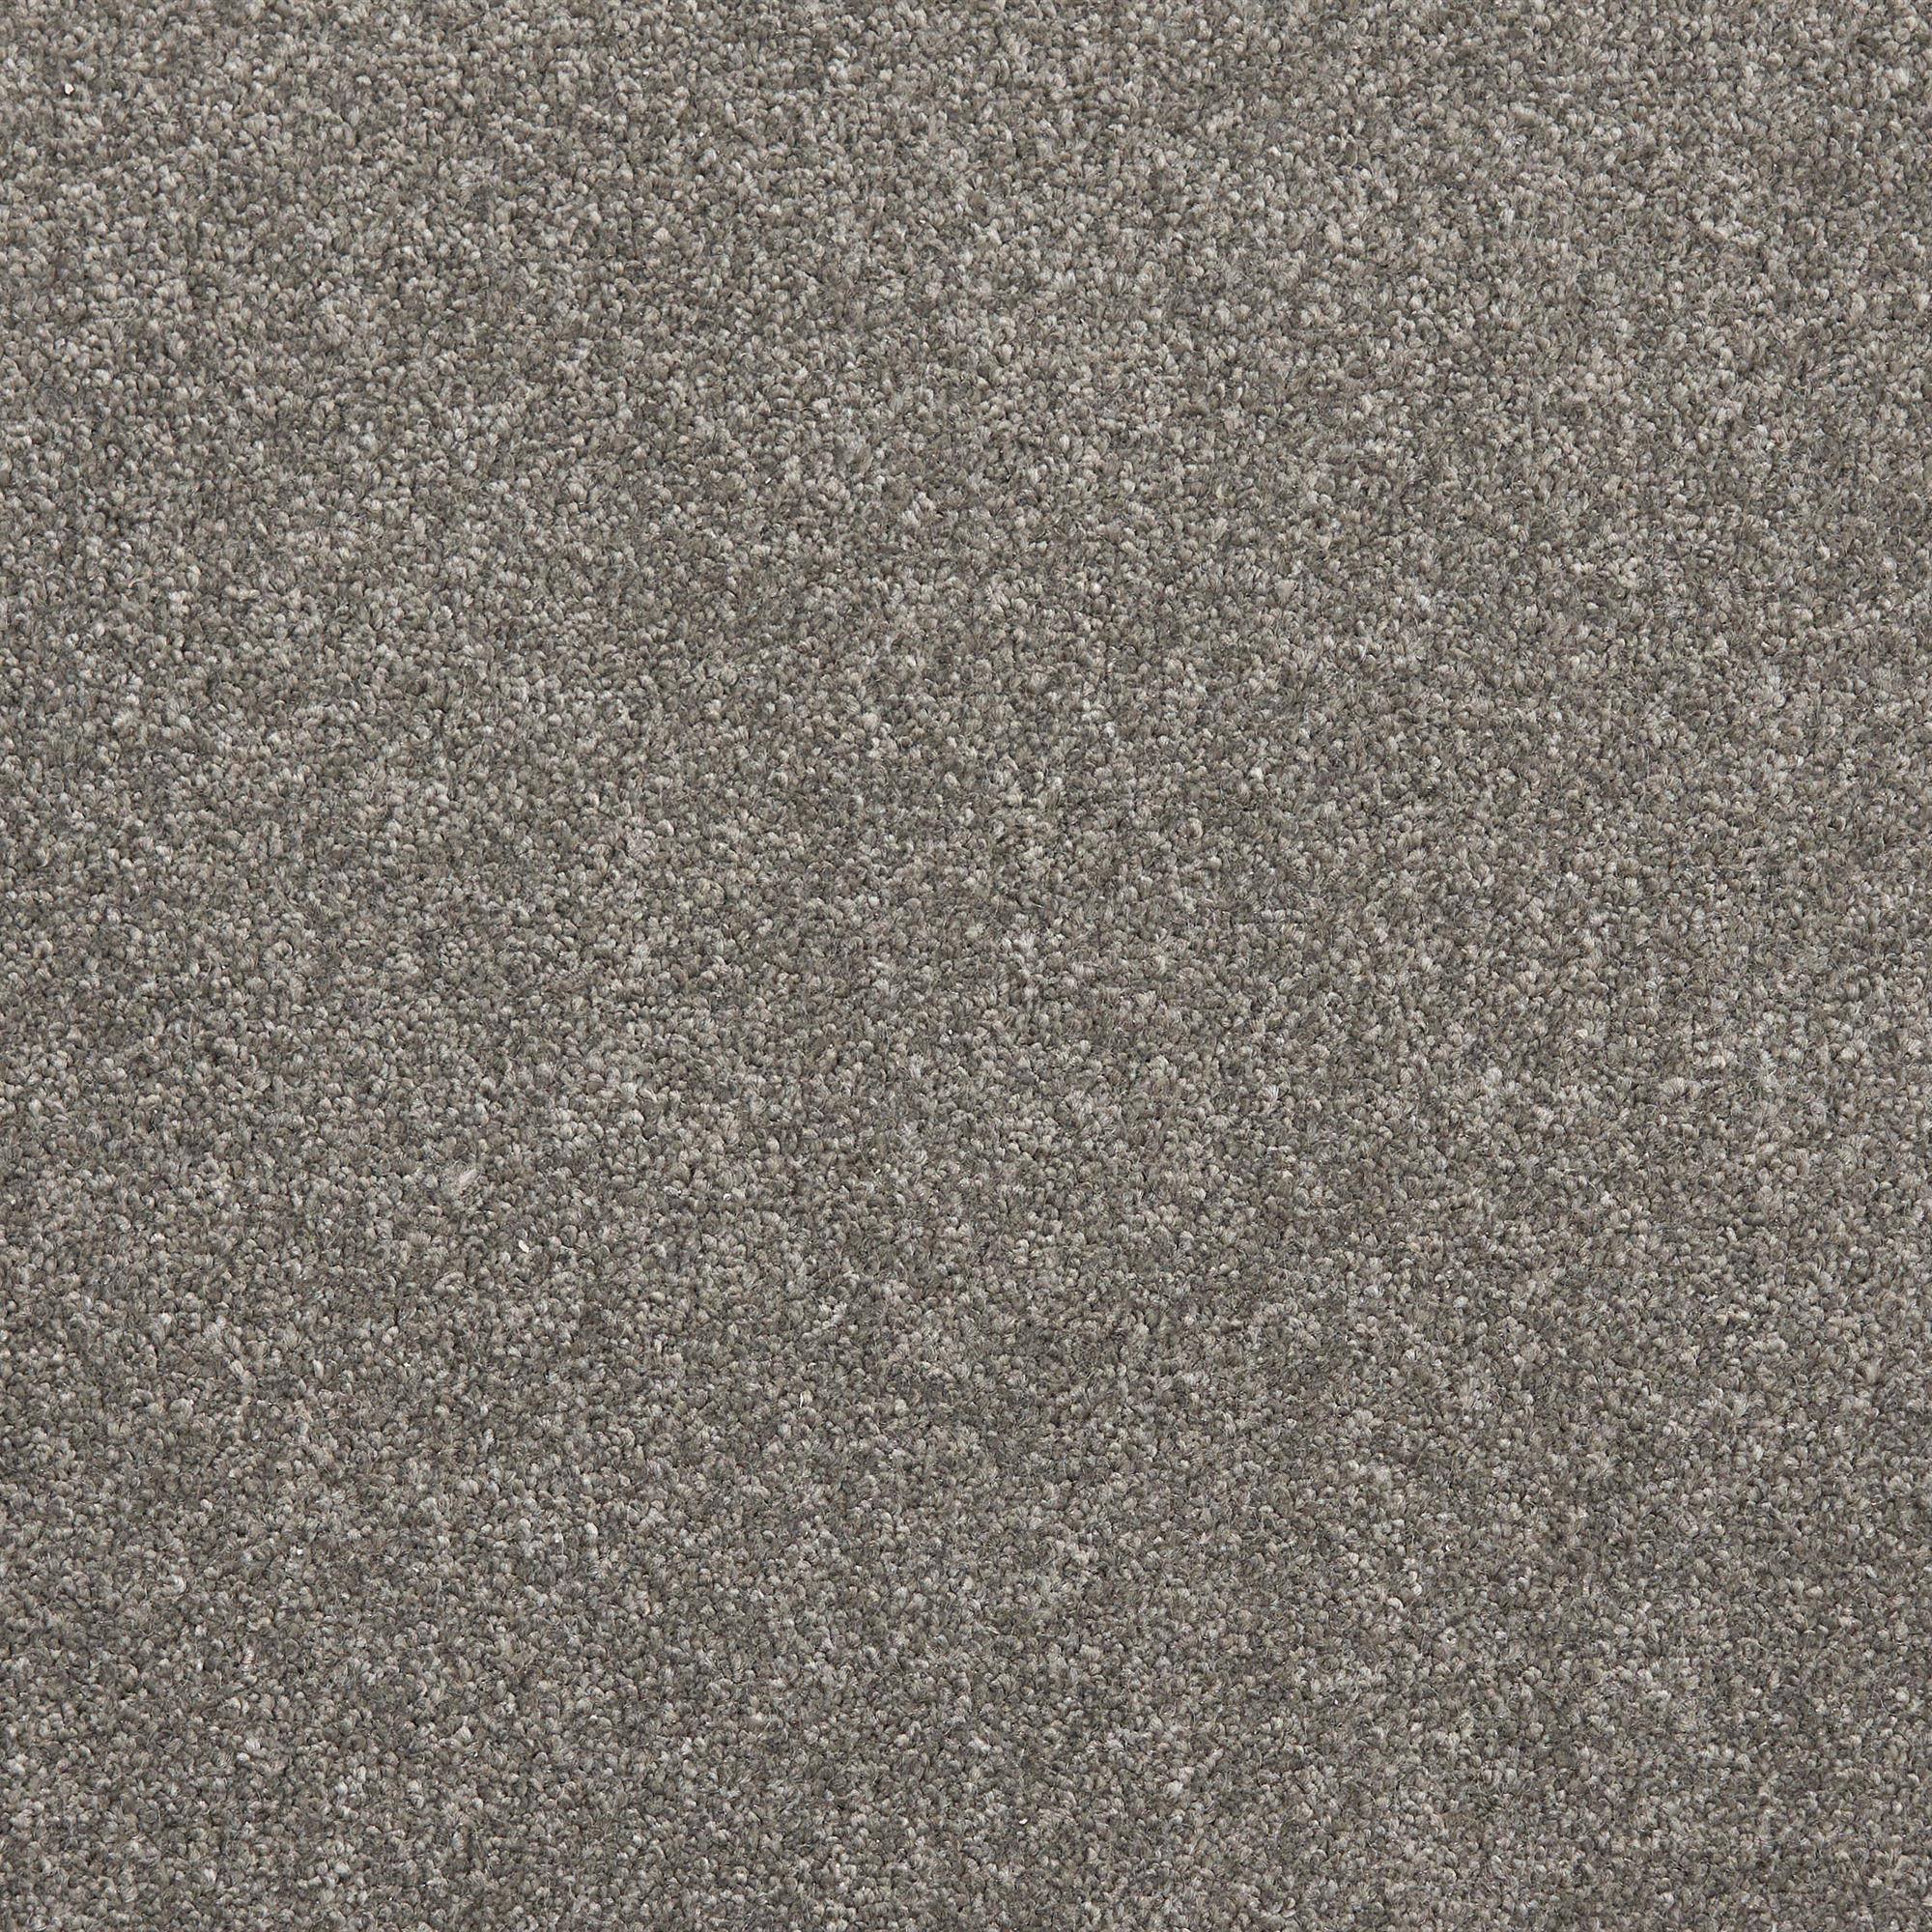 Living Crofthouse Carpet, 03 Glacier Grey, swatch